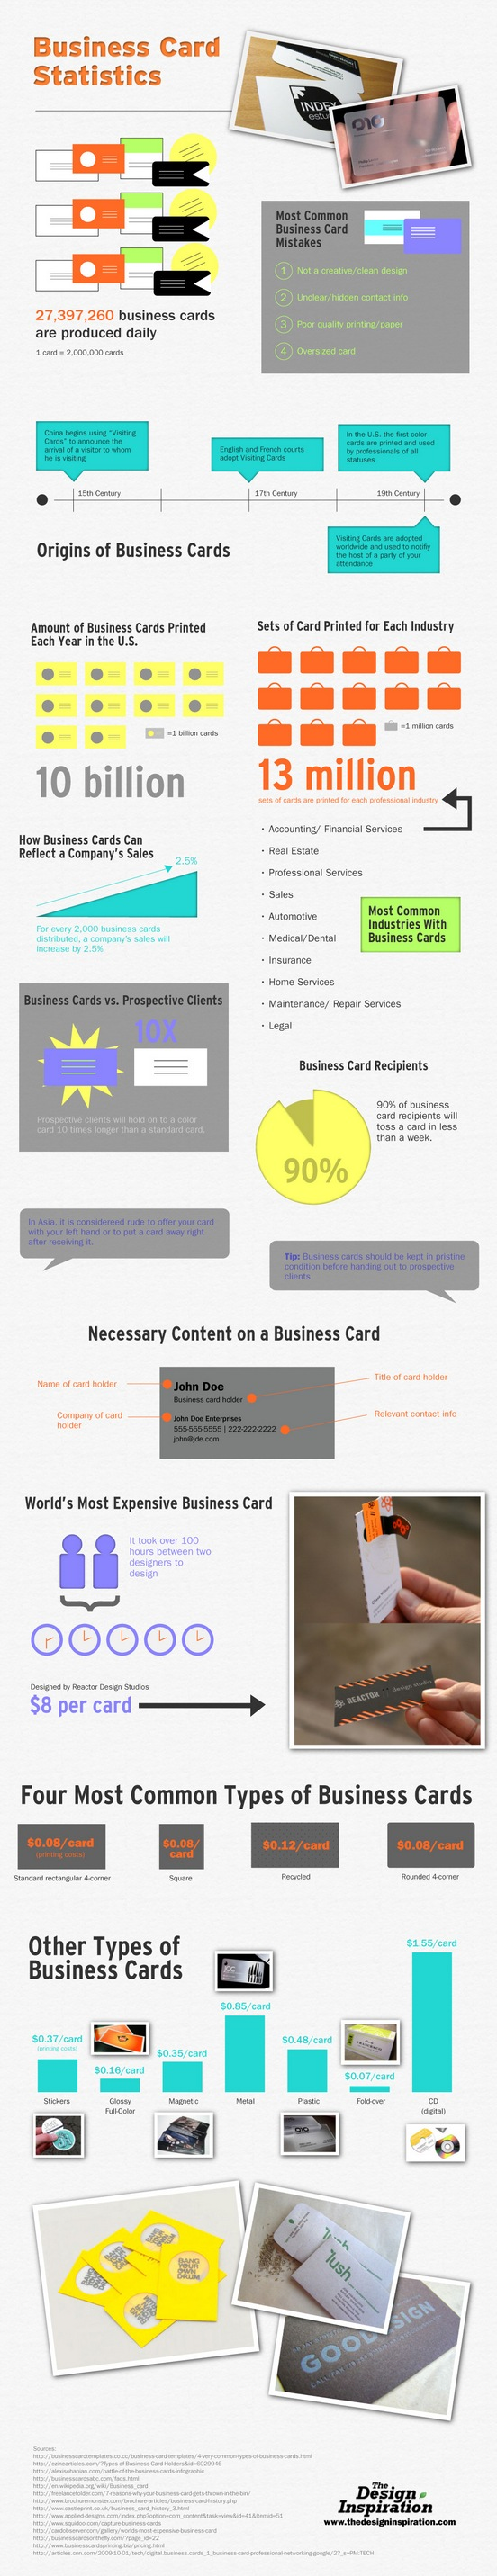 Business Cards Statistics Infographic